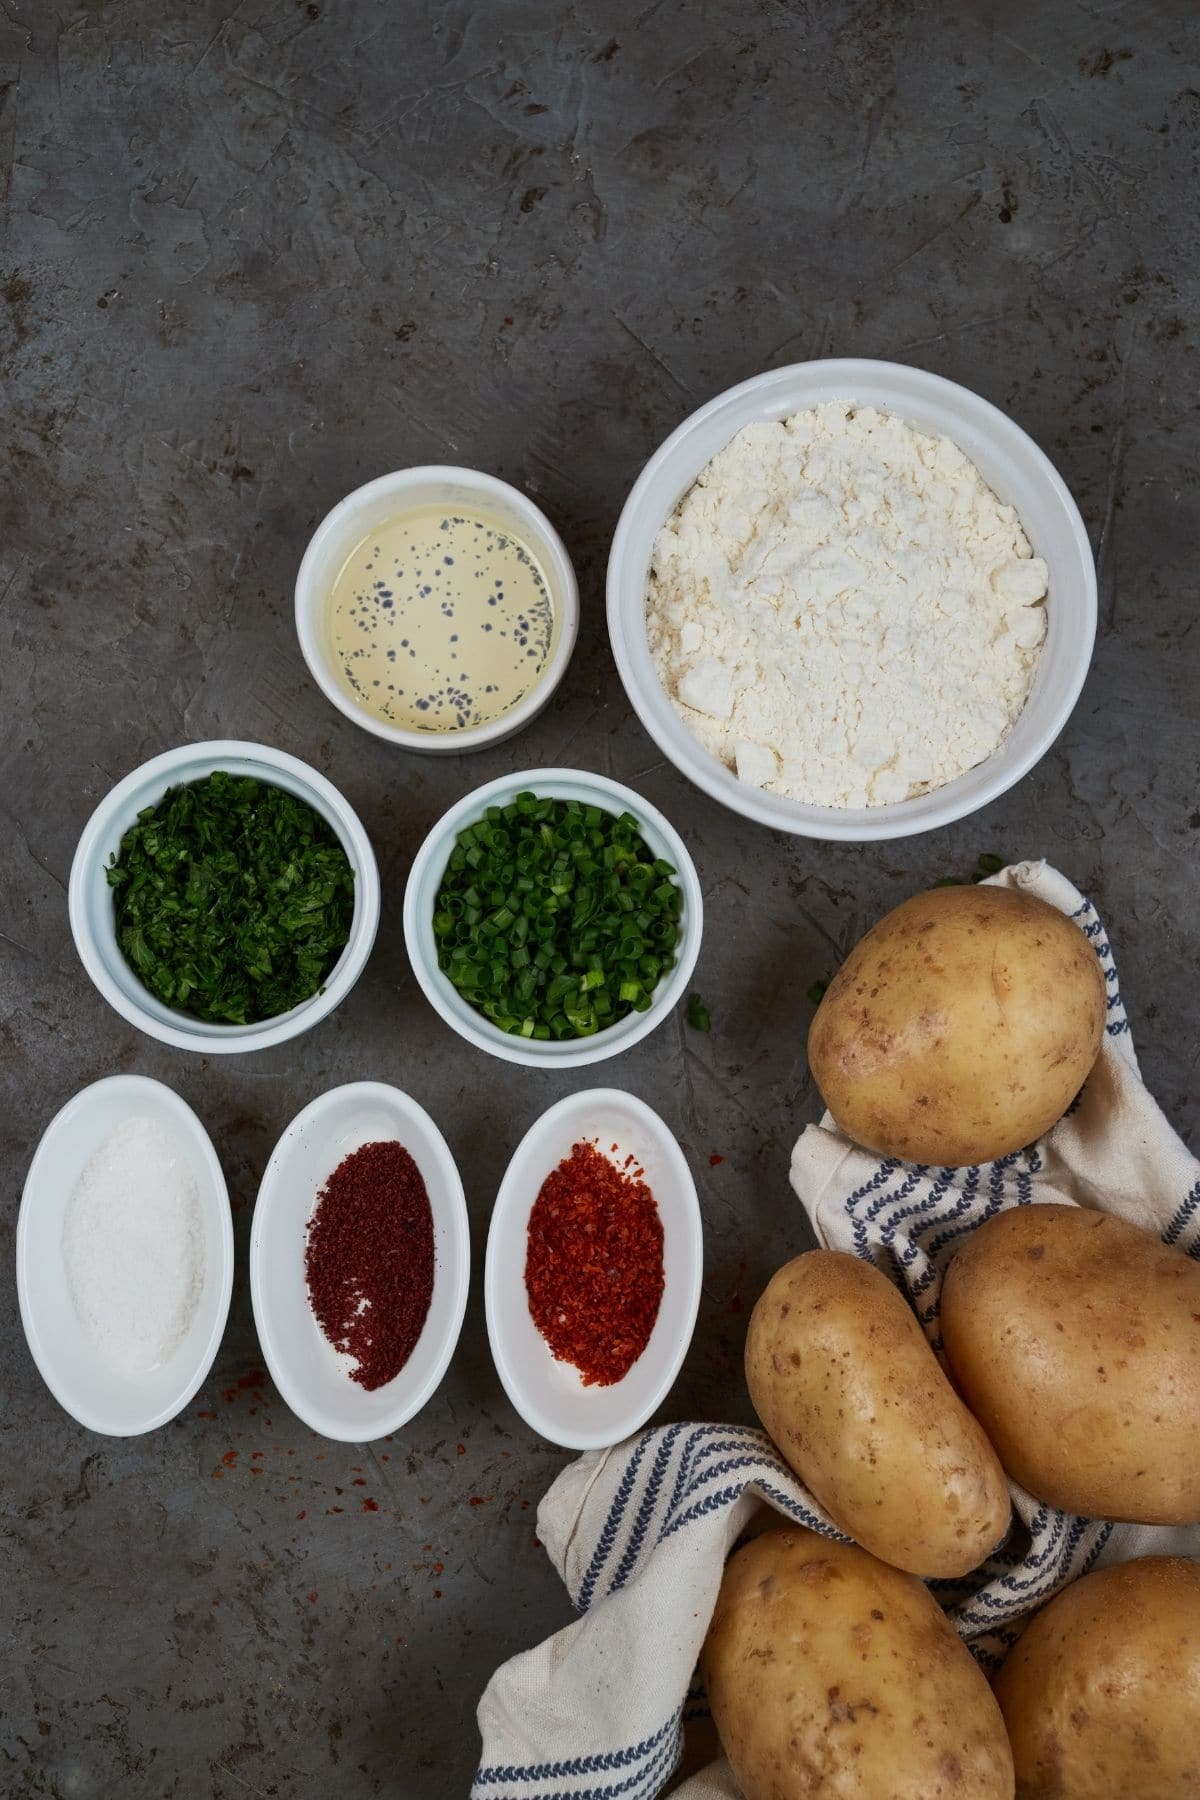 Ingredients for afghani bolani